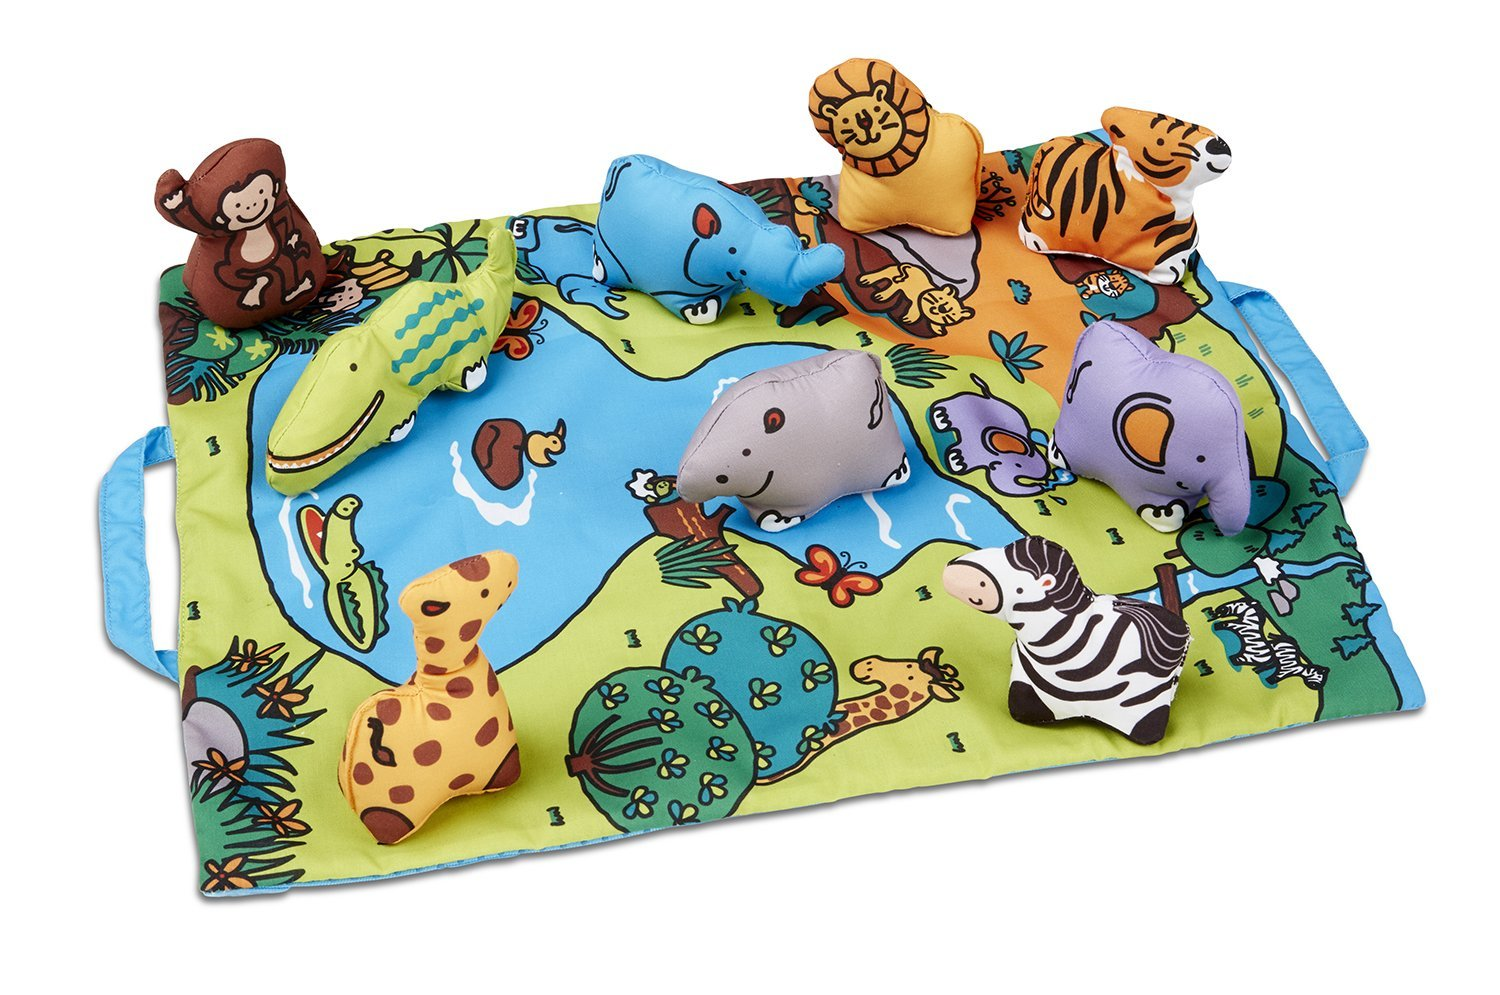 Melissa & Doug Take-Along Folding Wild Safari Play Mat (19.25 x 14.5 inches) With 9 Animals Melissa and Doug 9215